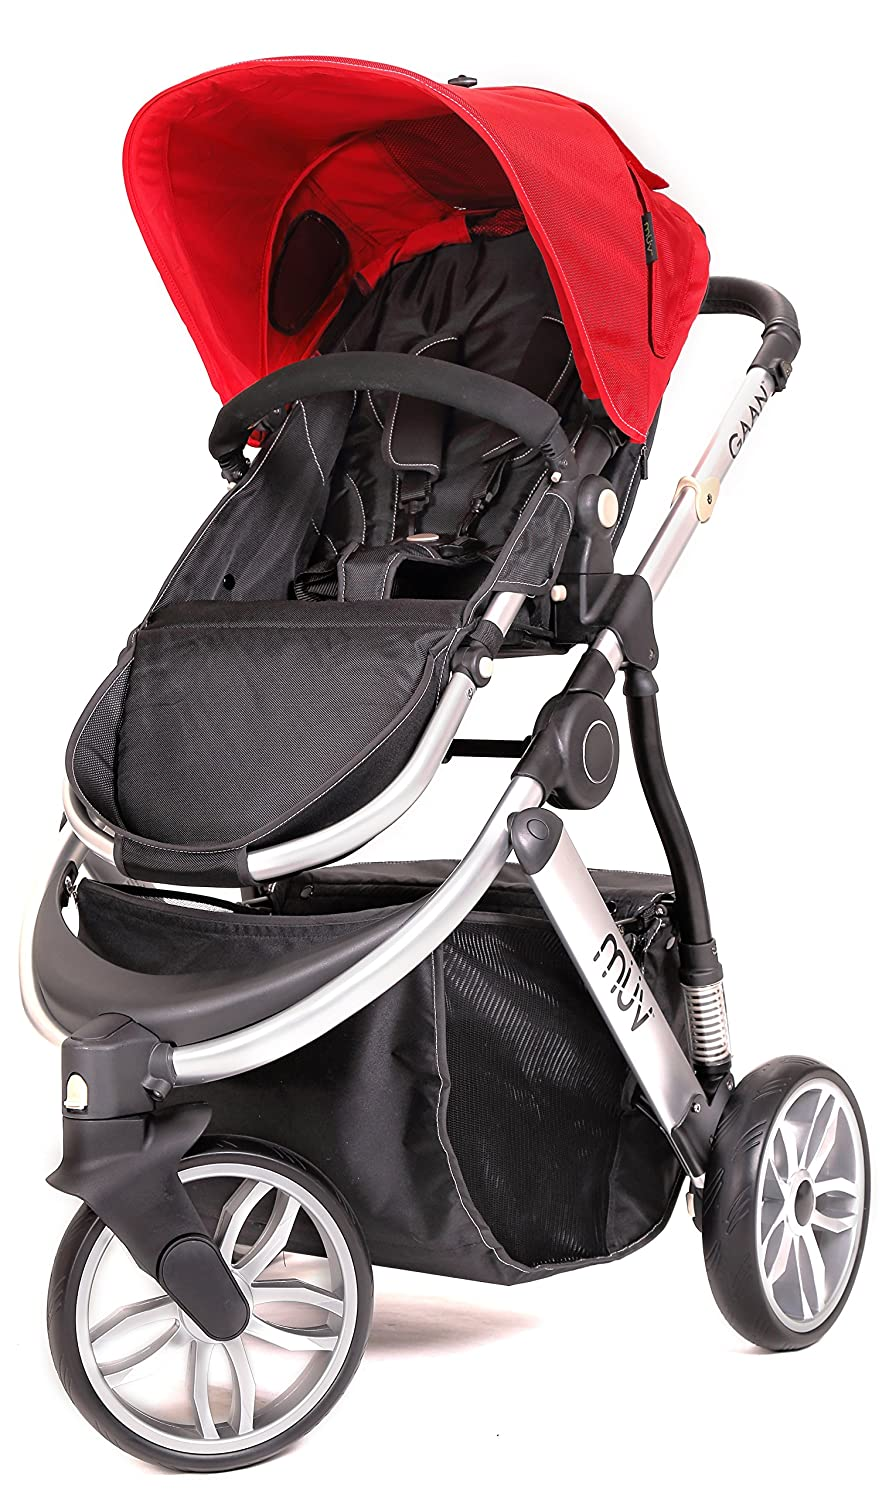 Muv Baby Trend Gaan Stroller, Satin Black/Cabernet MS990107